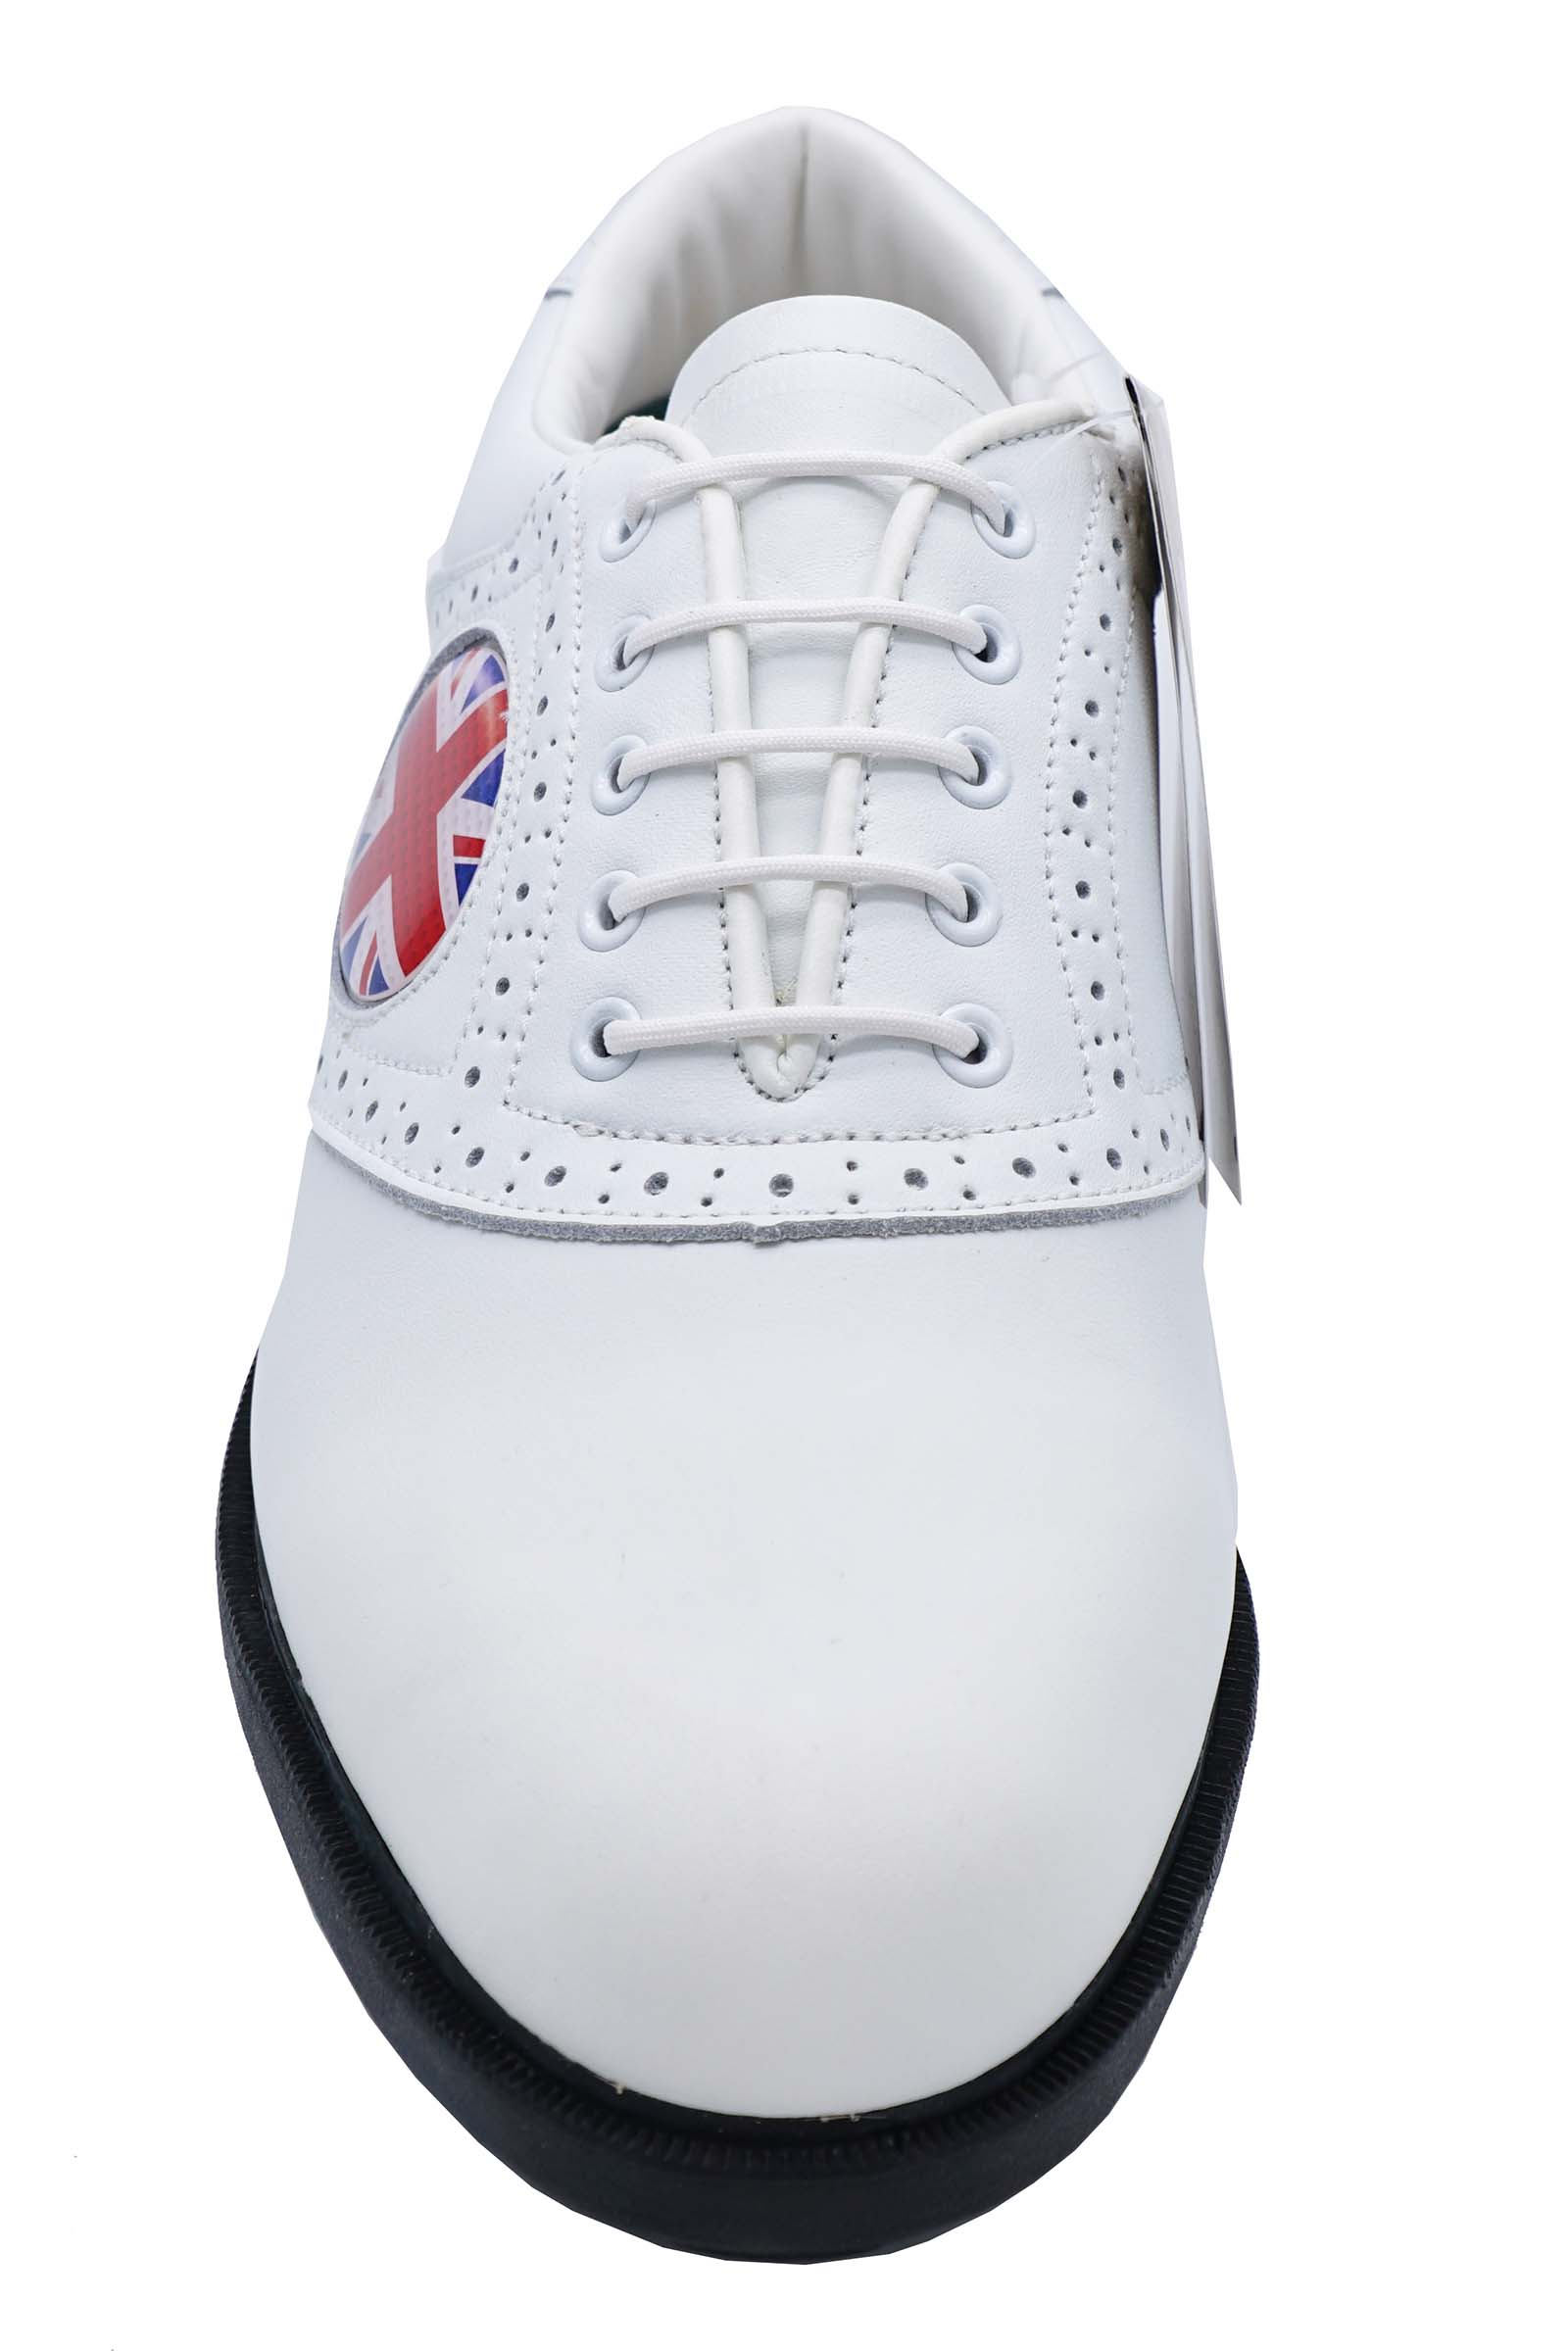 MENS-WHITE-LEATHER-LACE-UP-SPIKELESS-CASUAL-CLASSIC-GOLF-COMFORT-SHOES-UK-6-11